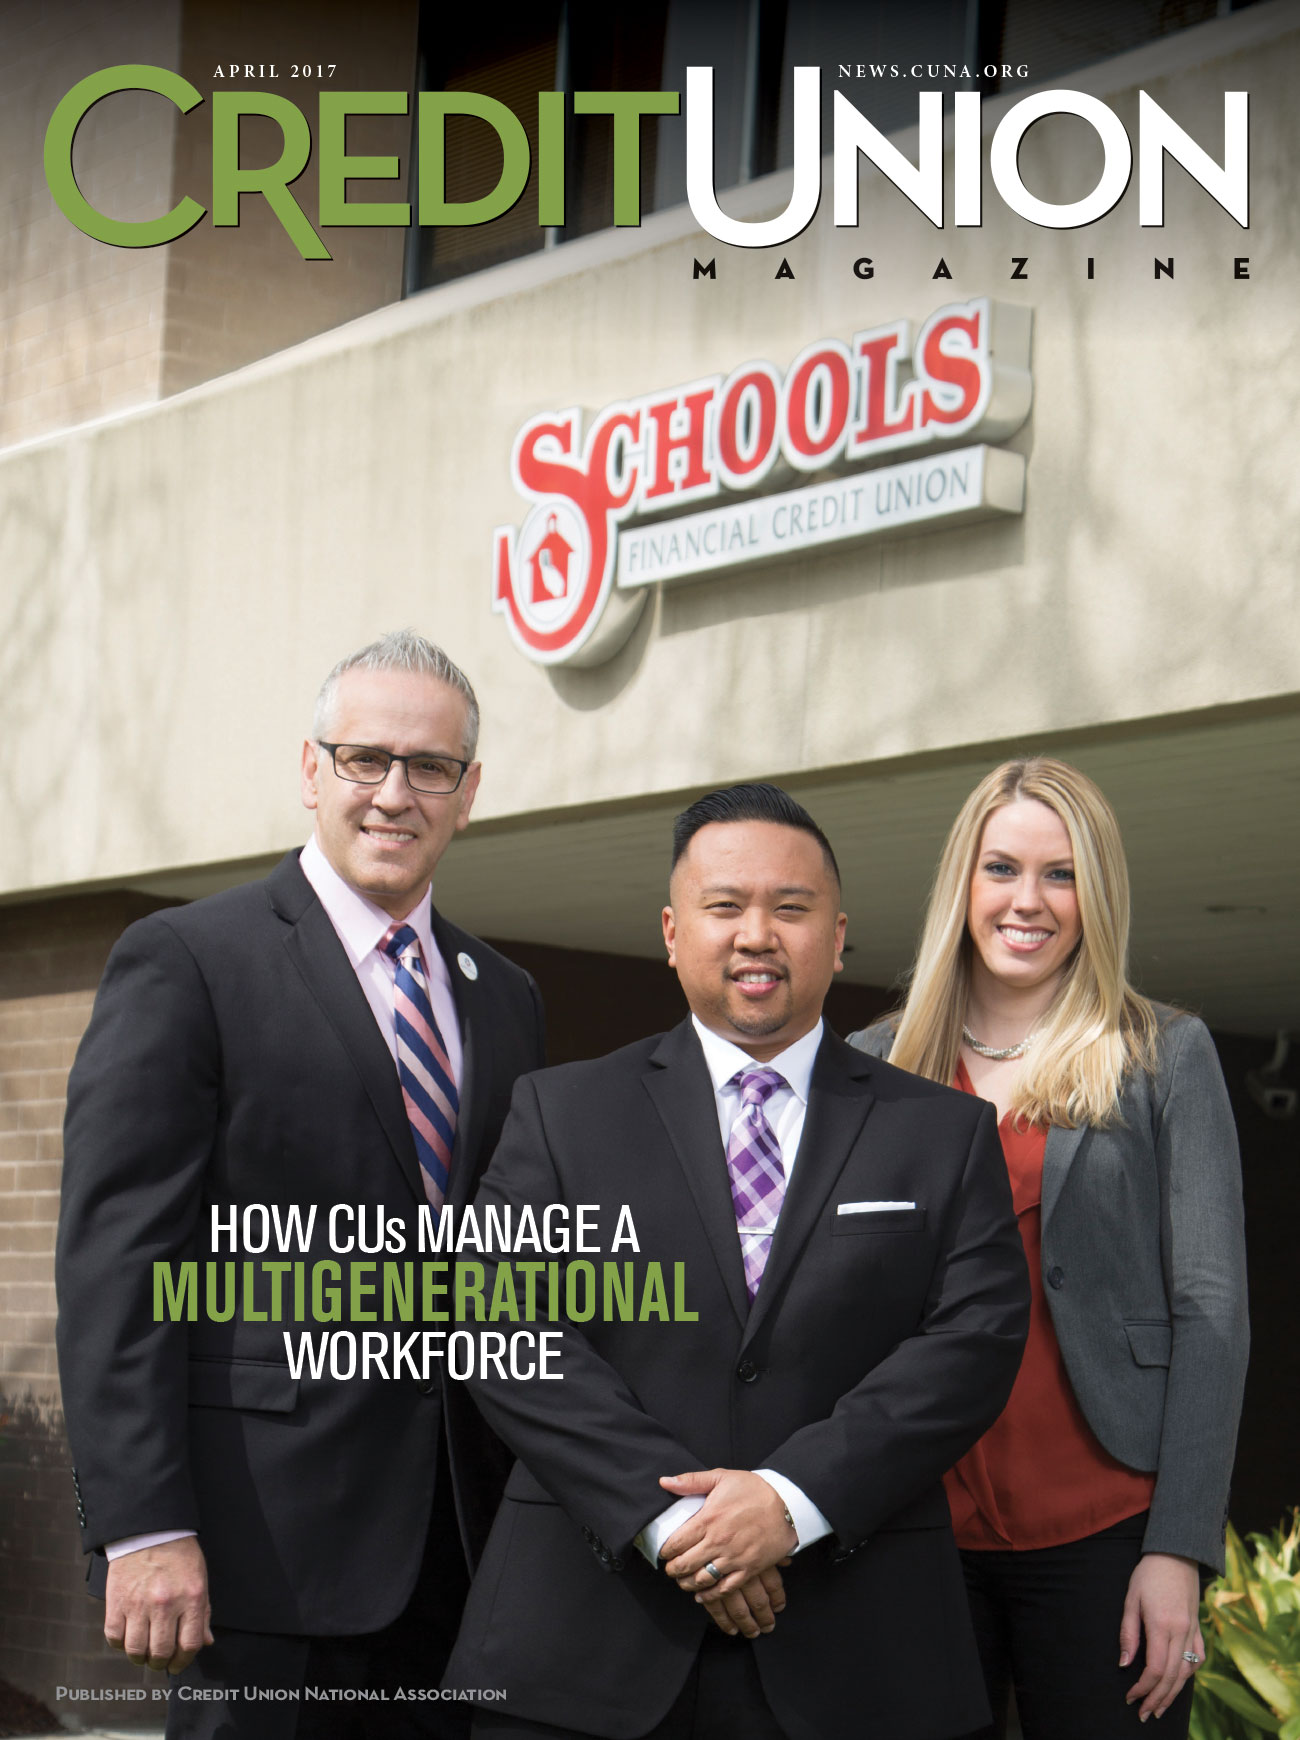 Credit Union Magazine - April 2017